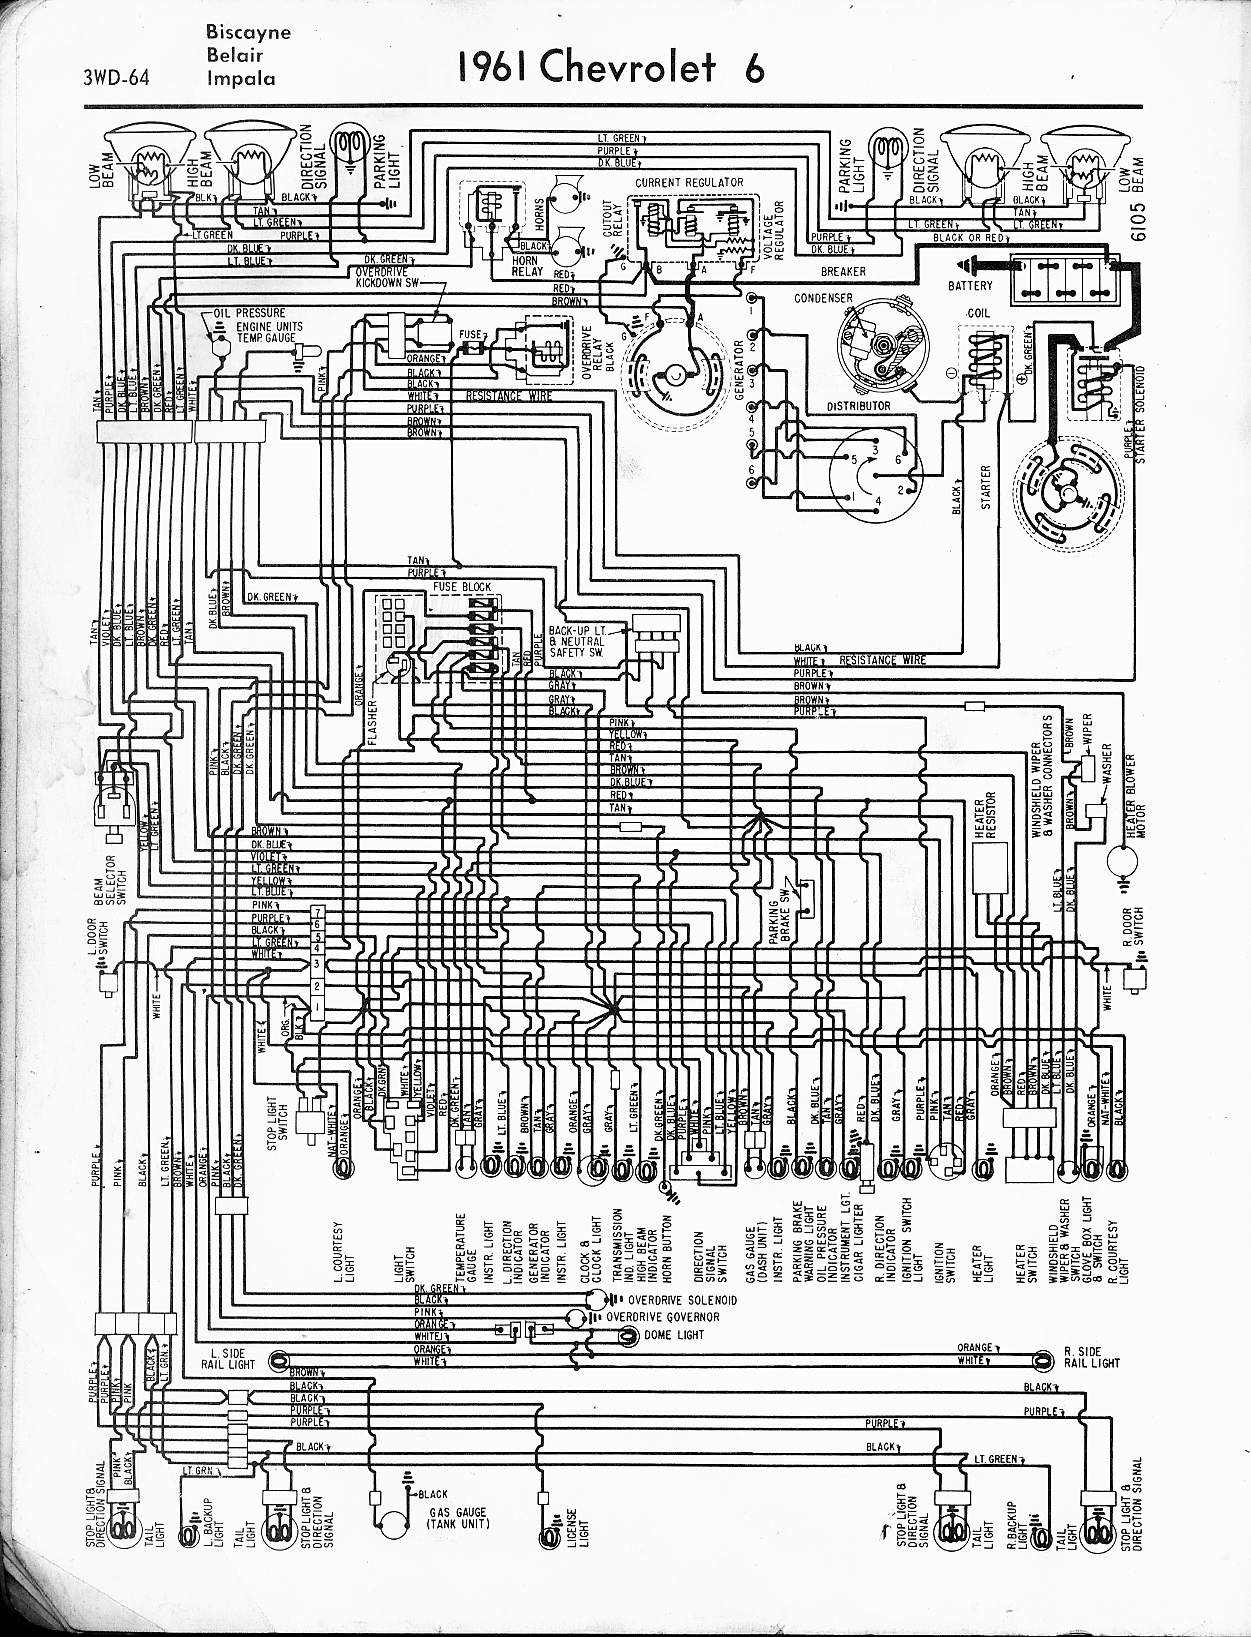 1960 C10 Wiring Harness Electronic Diagrams Diagram For Chevy Hhr 57 65 1965 Harnesses